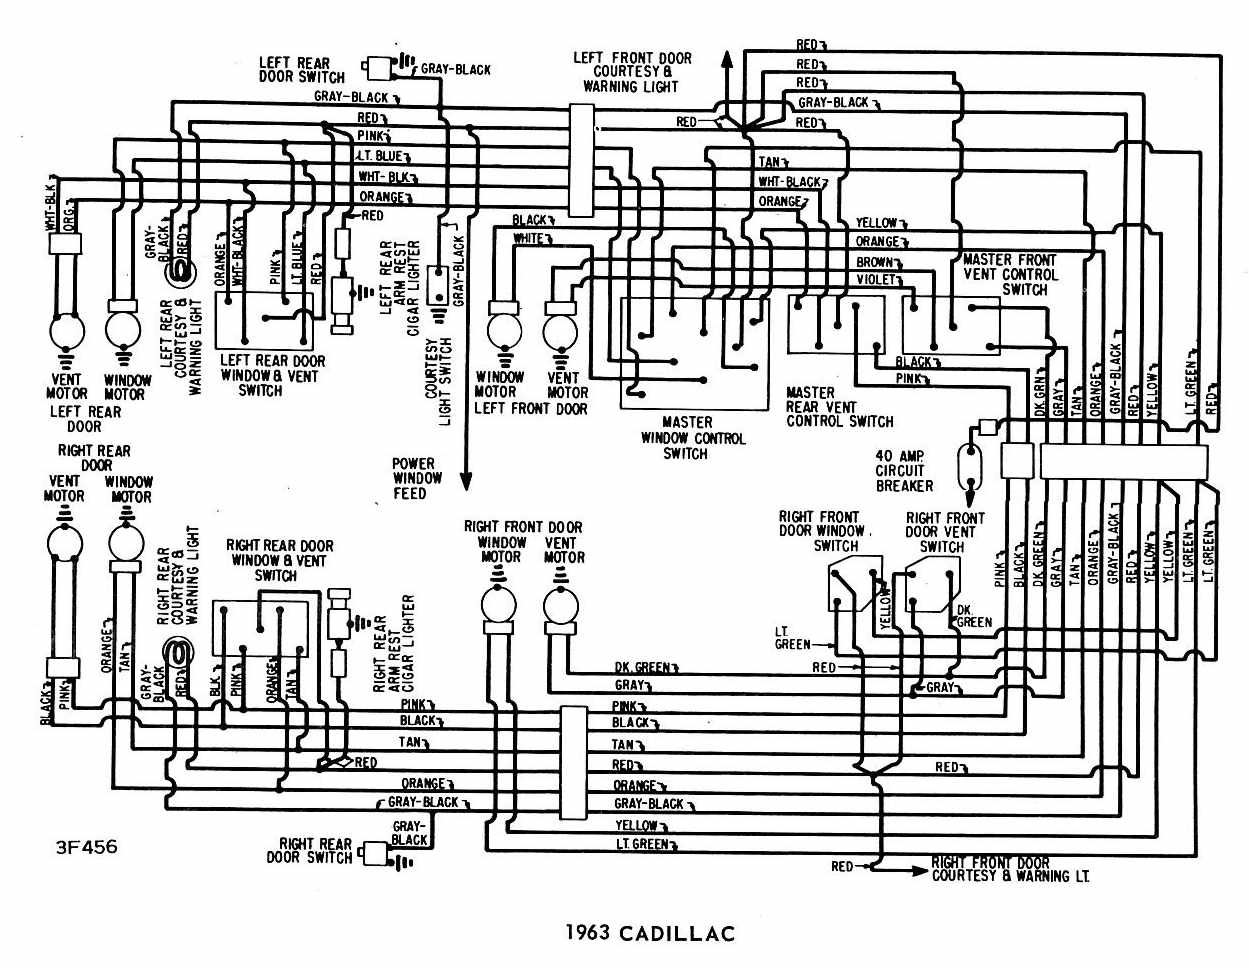 Cadillac+1963+Windows+Wiring+Diagram 2001 cadillac eldorado wiring harness 2001 wirning diagrams 2005 cadillac deville wiring diagram at edmiracle.co